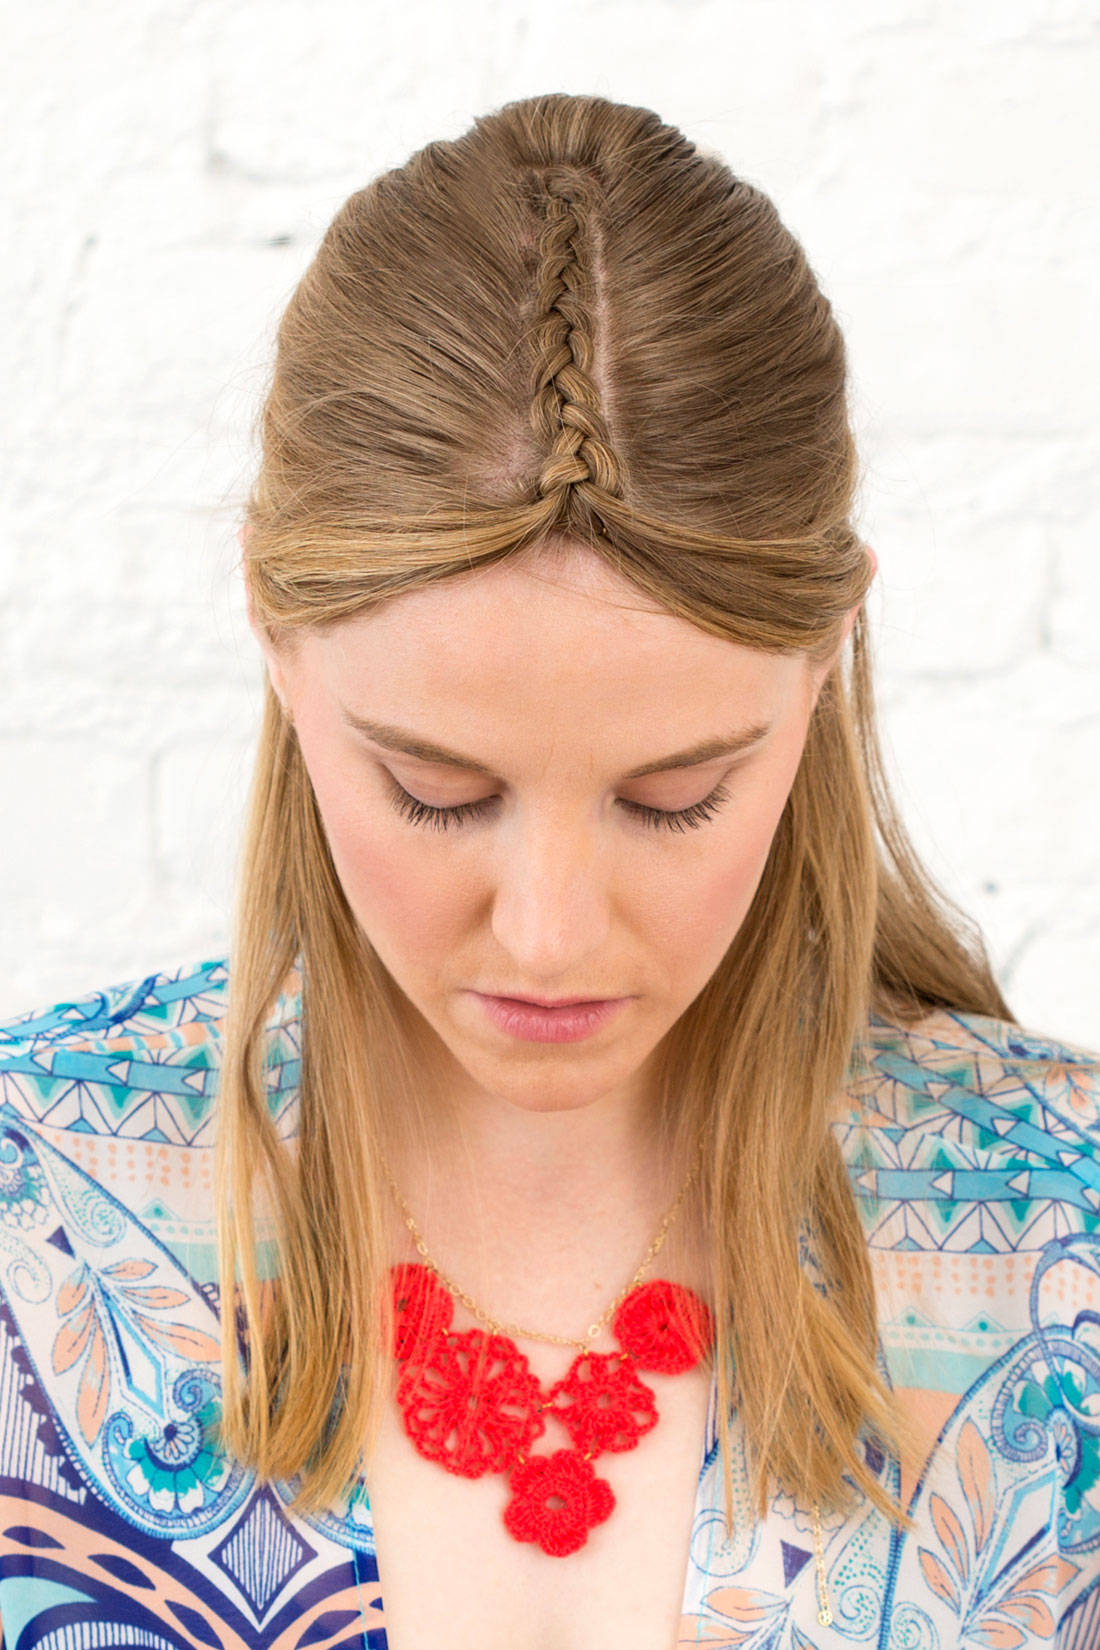 Diy coachella braid tutorial